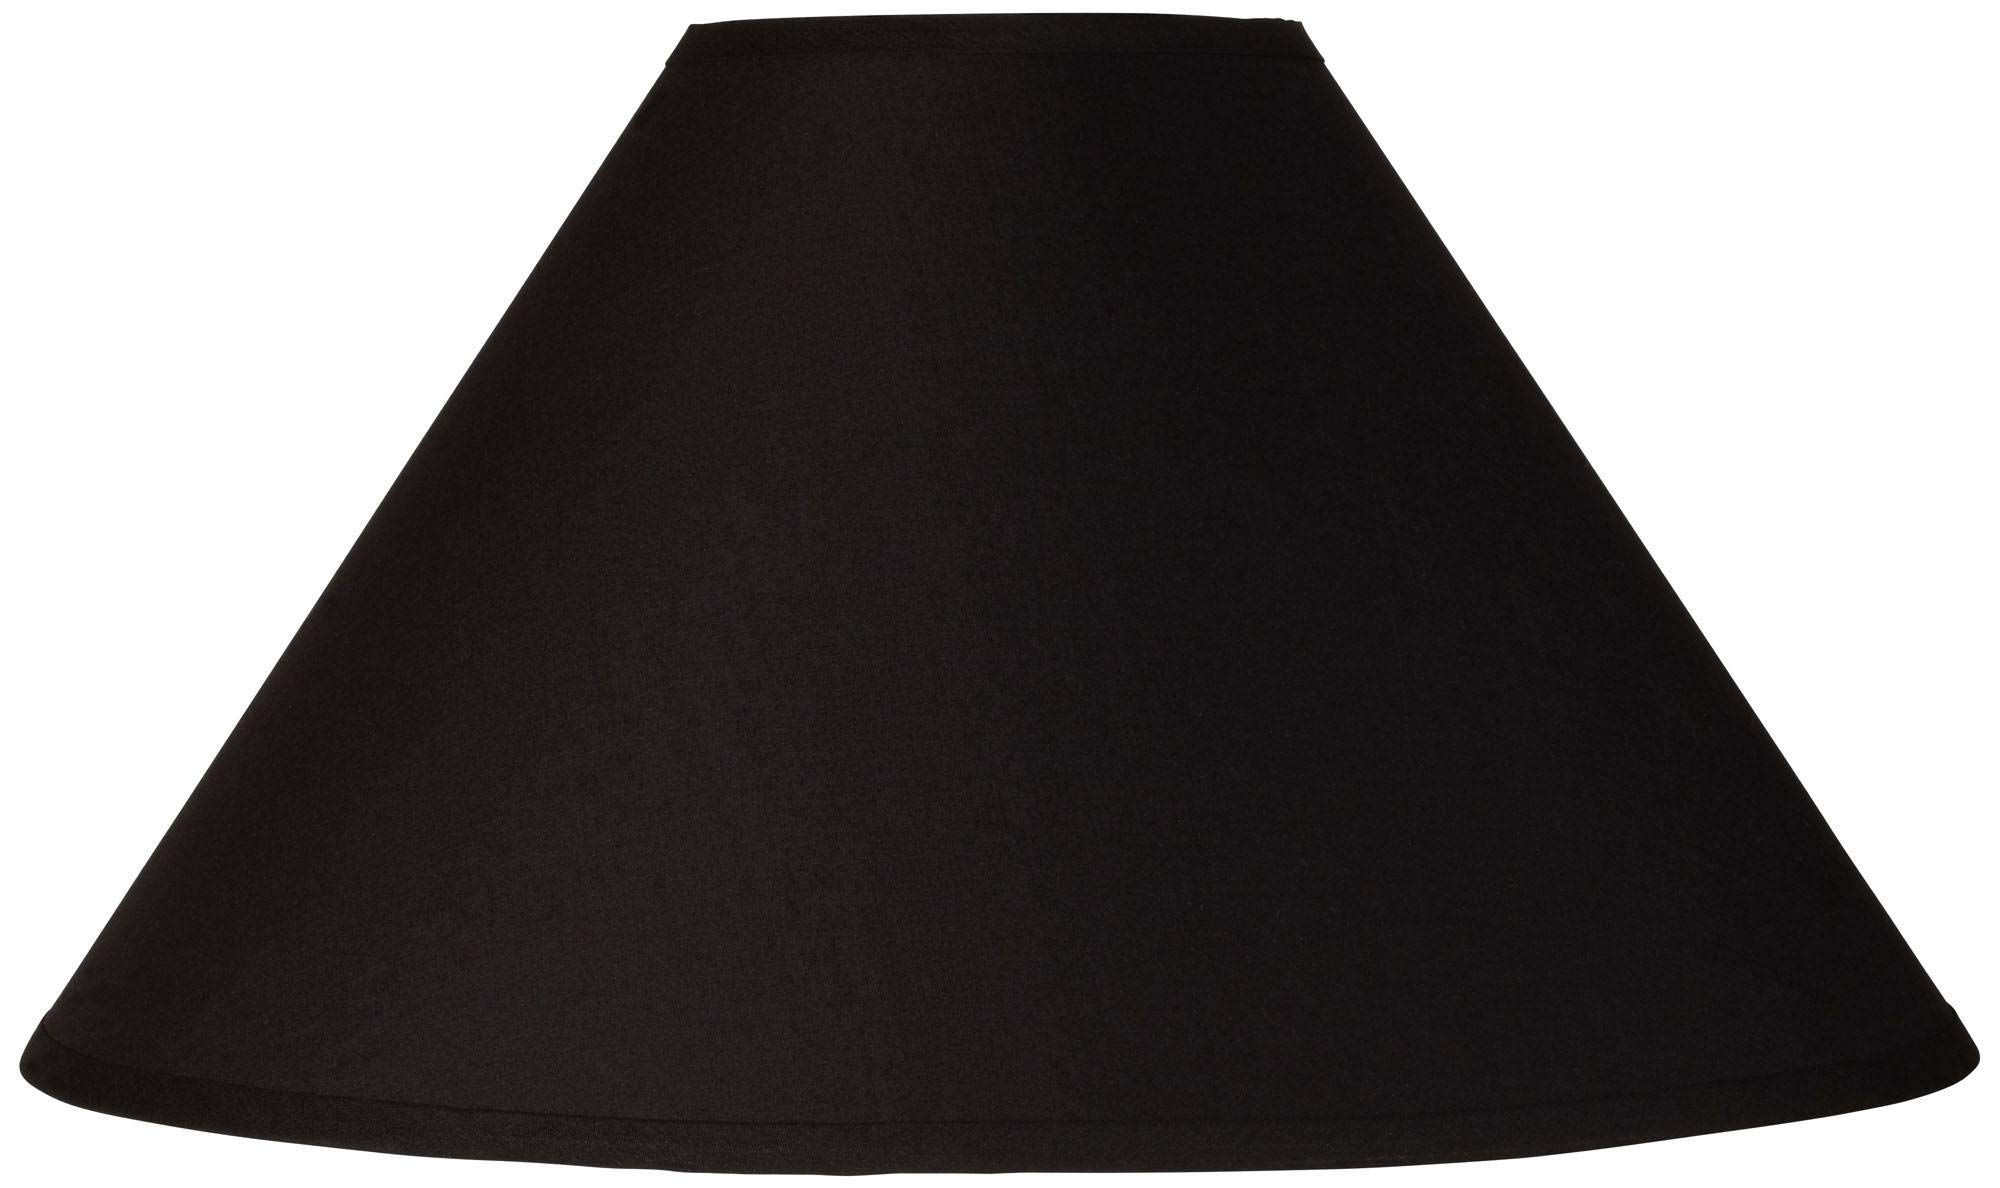 Black Chimney Empire Lamp Shade 6x19x12 (Spider) - Brentwood